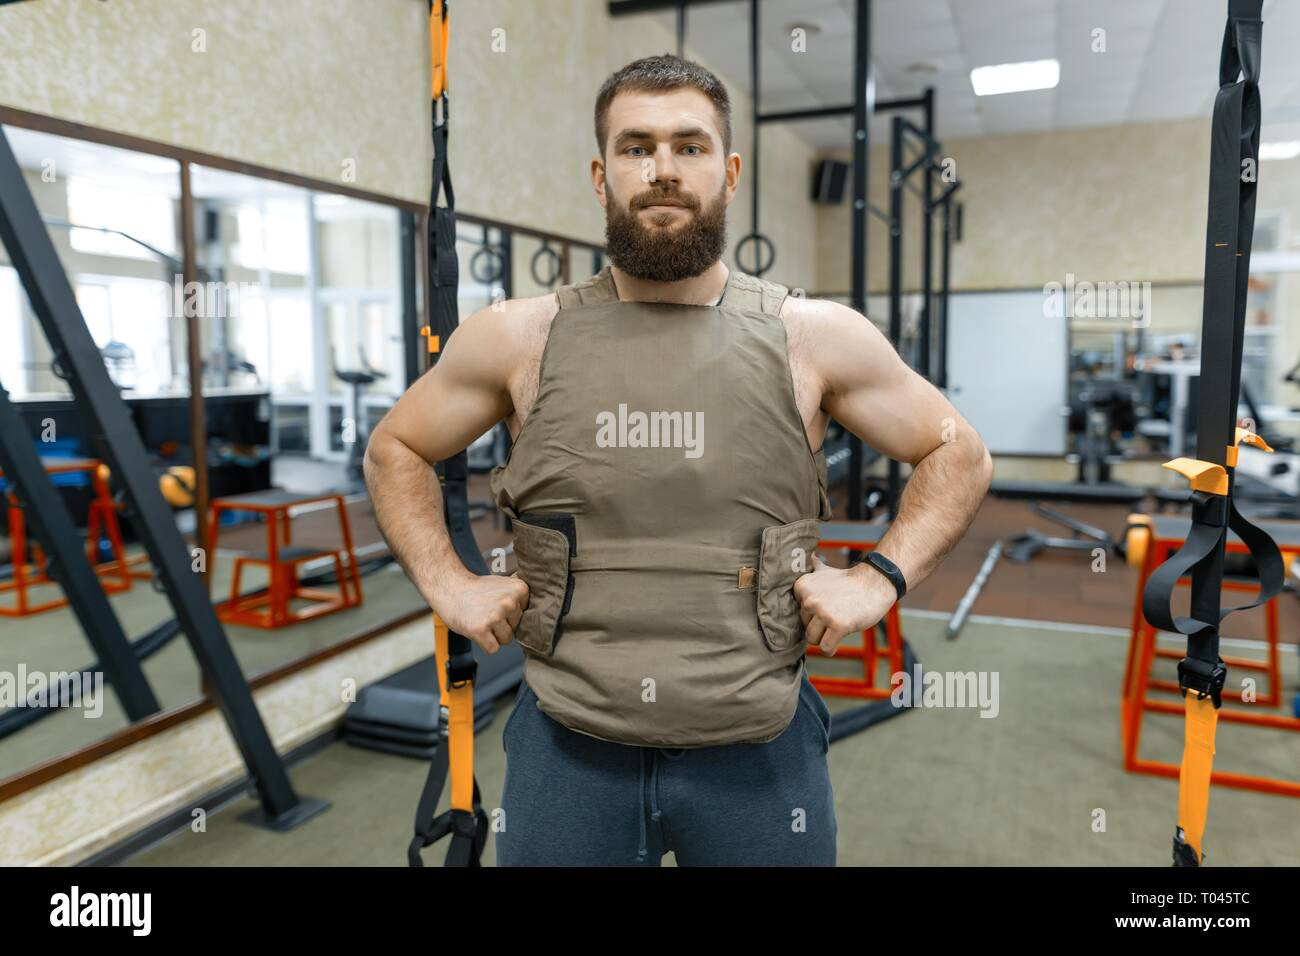 Portrait muscular caucasian bearded adult man in gym, dressed in bulletproof armored vest, military sport. - Stock Image